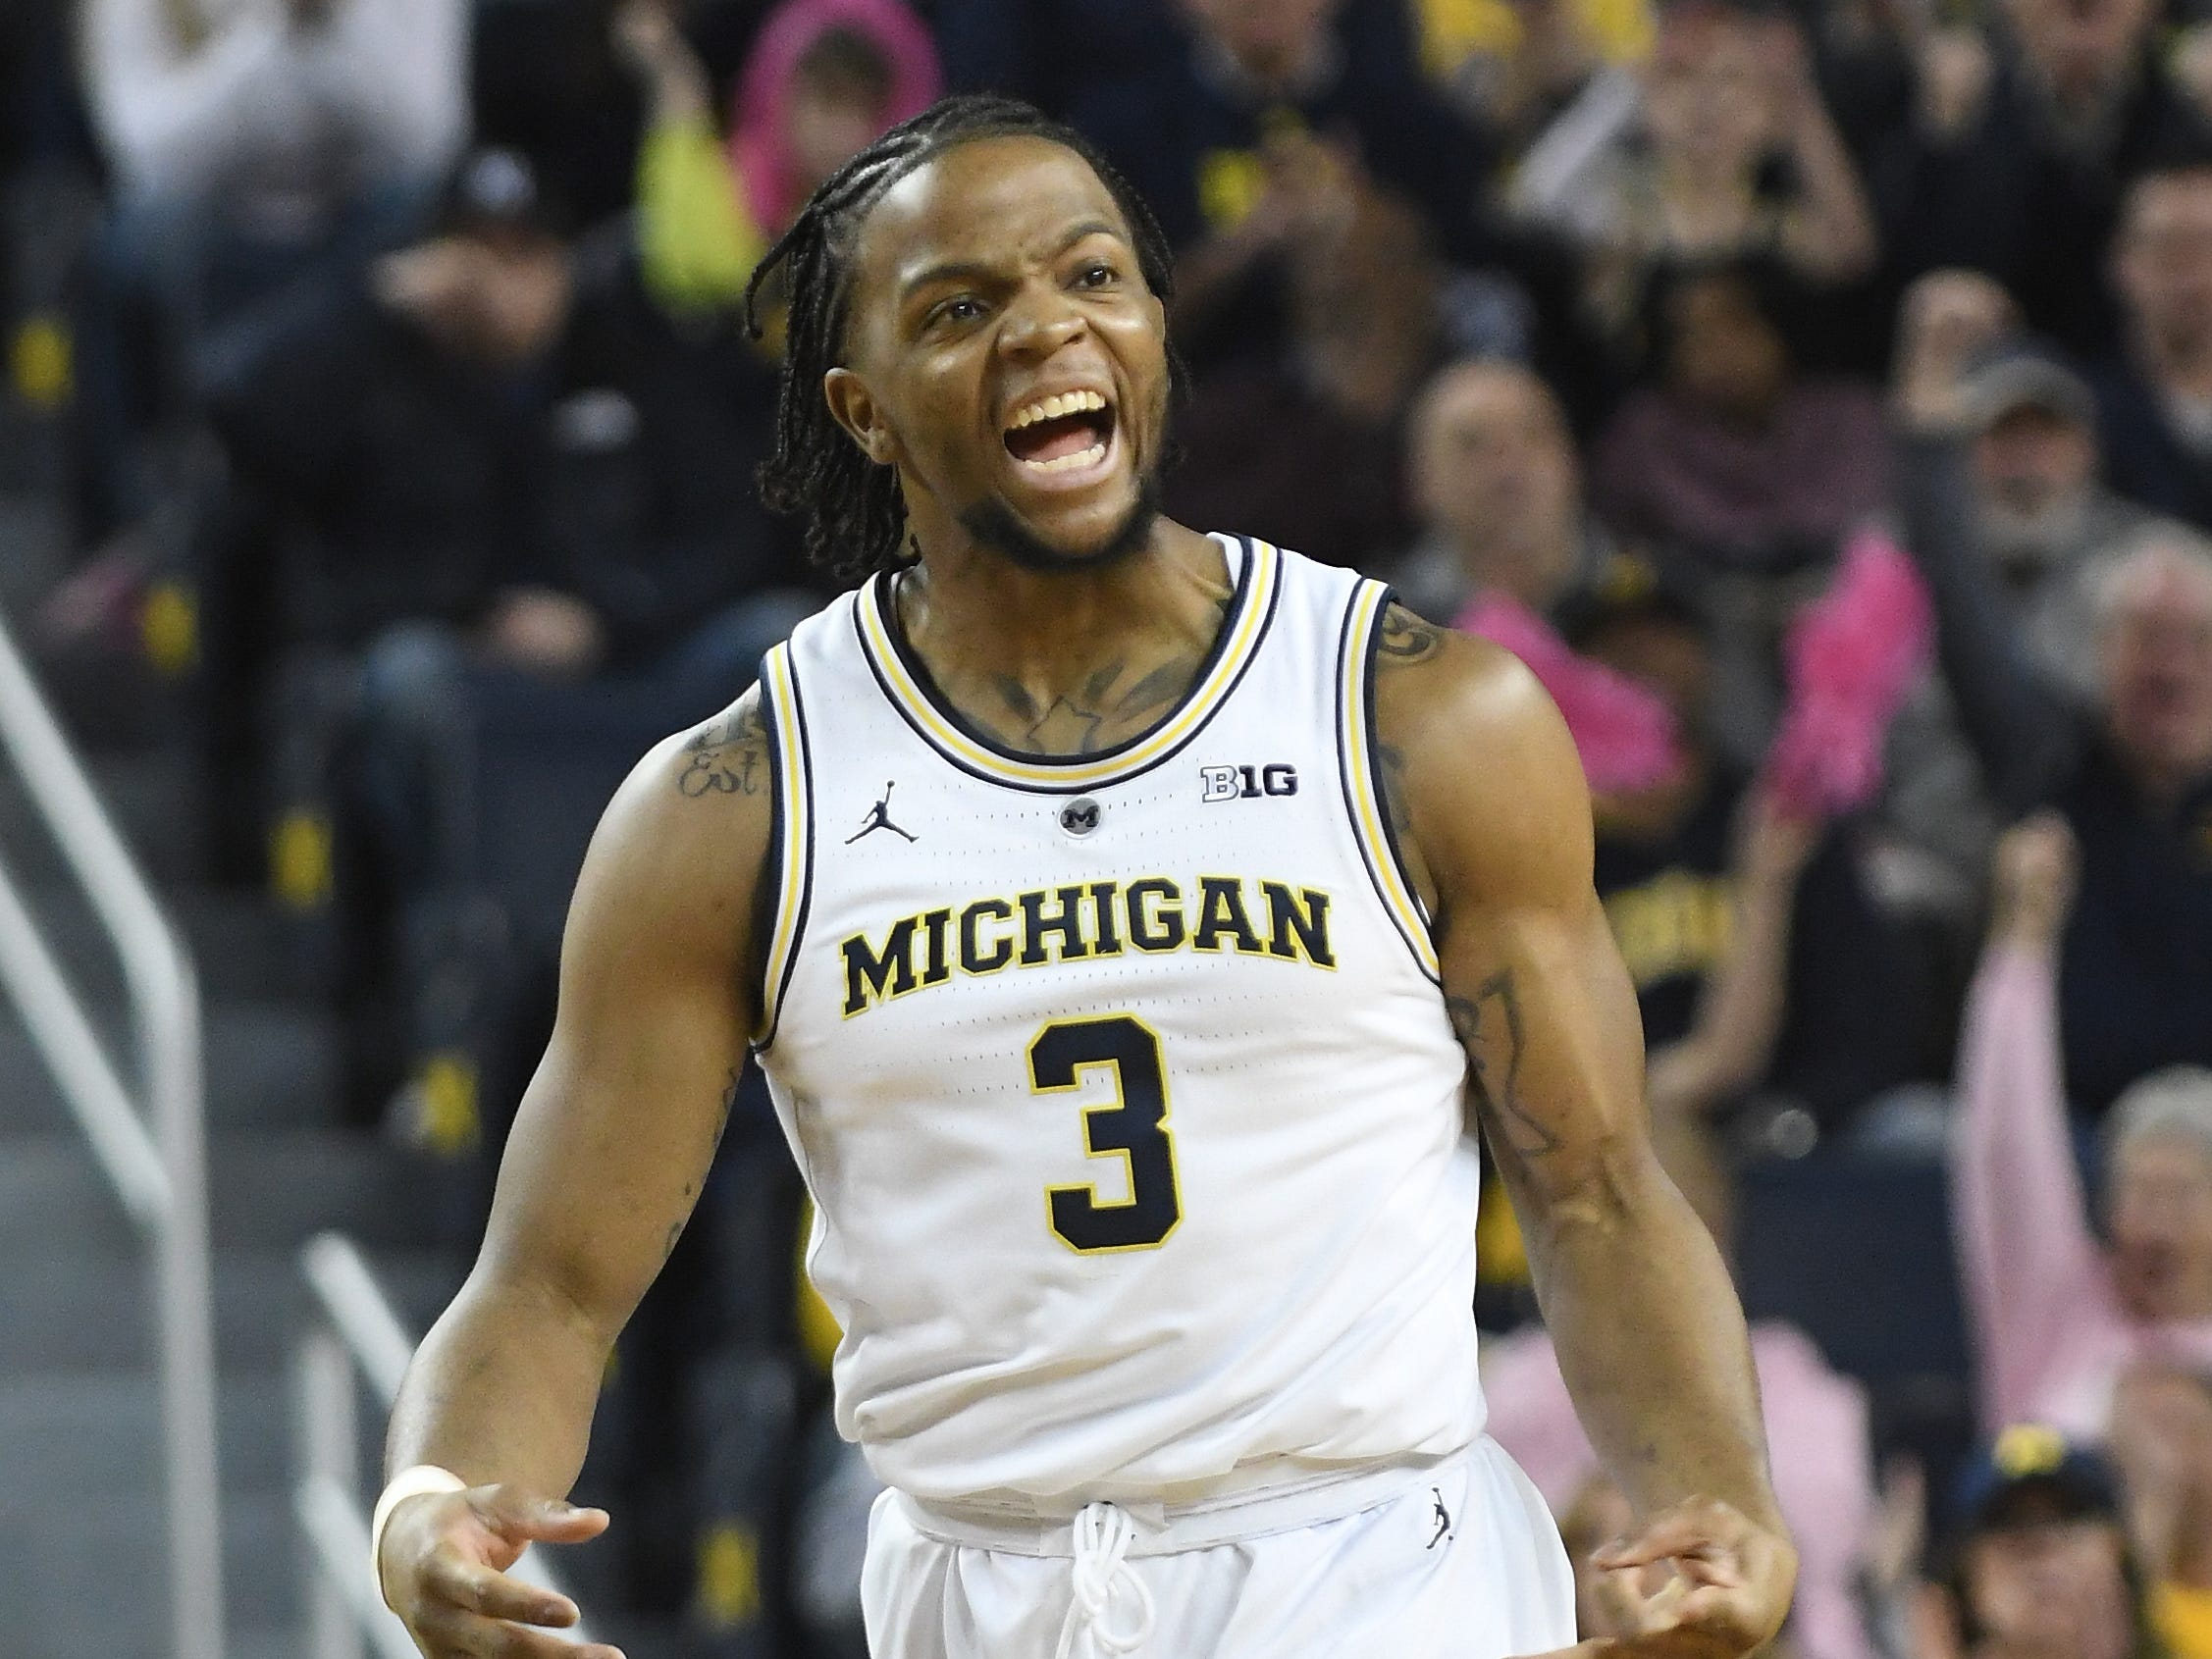 Michigan's Zavier Simpson lets out a yell after assisting in a three point basket in the first half 65-52 victory over Maryland at Crisler Center in Ann Arbor, Michigan on February 16, 2019.